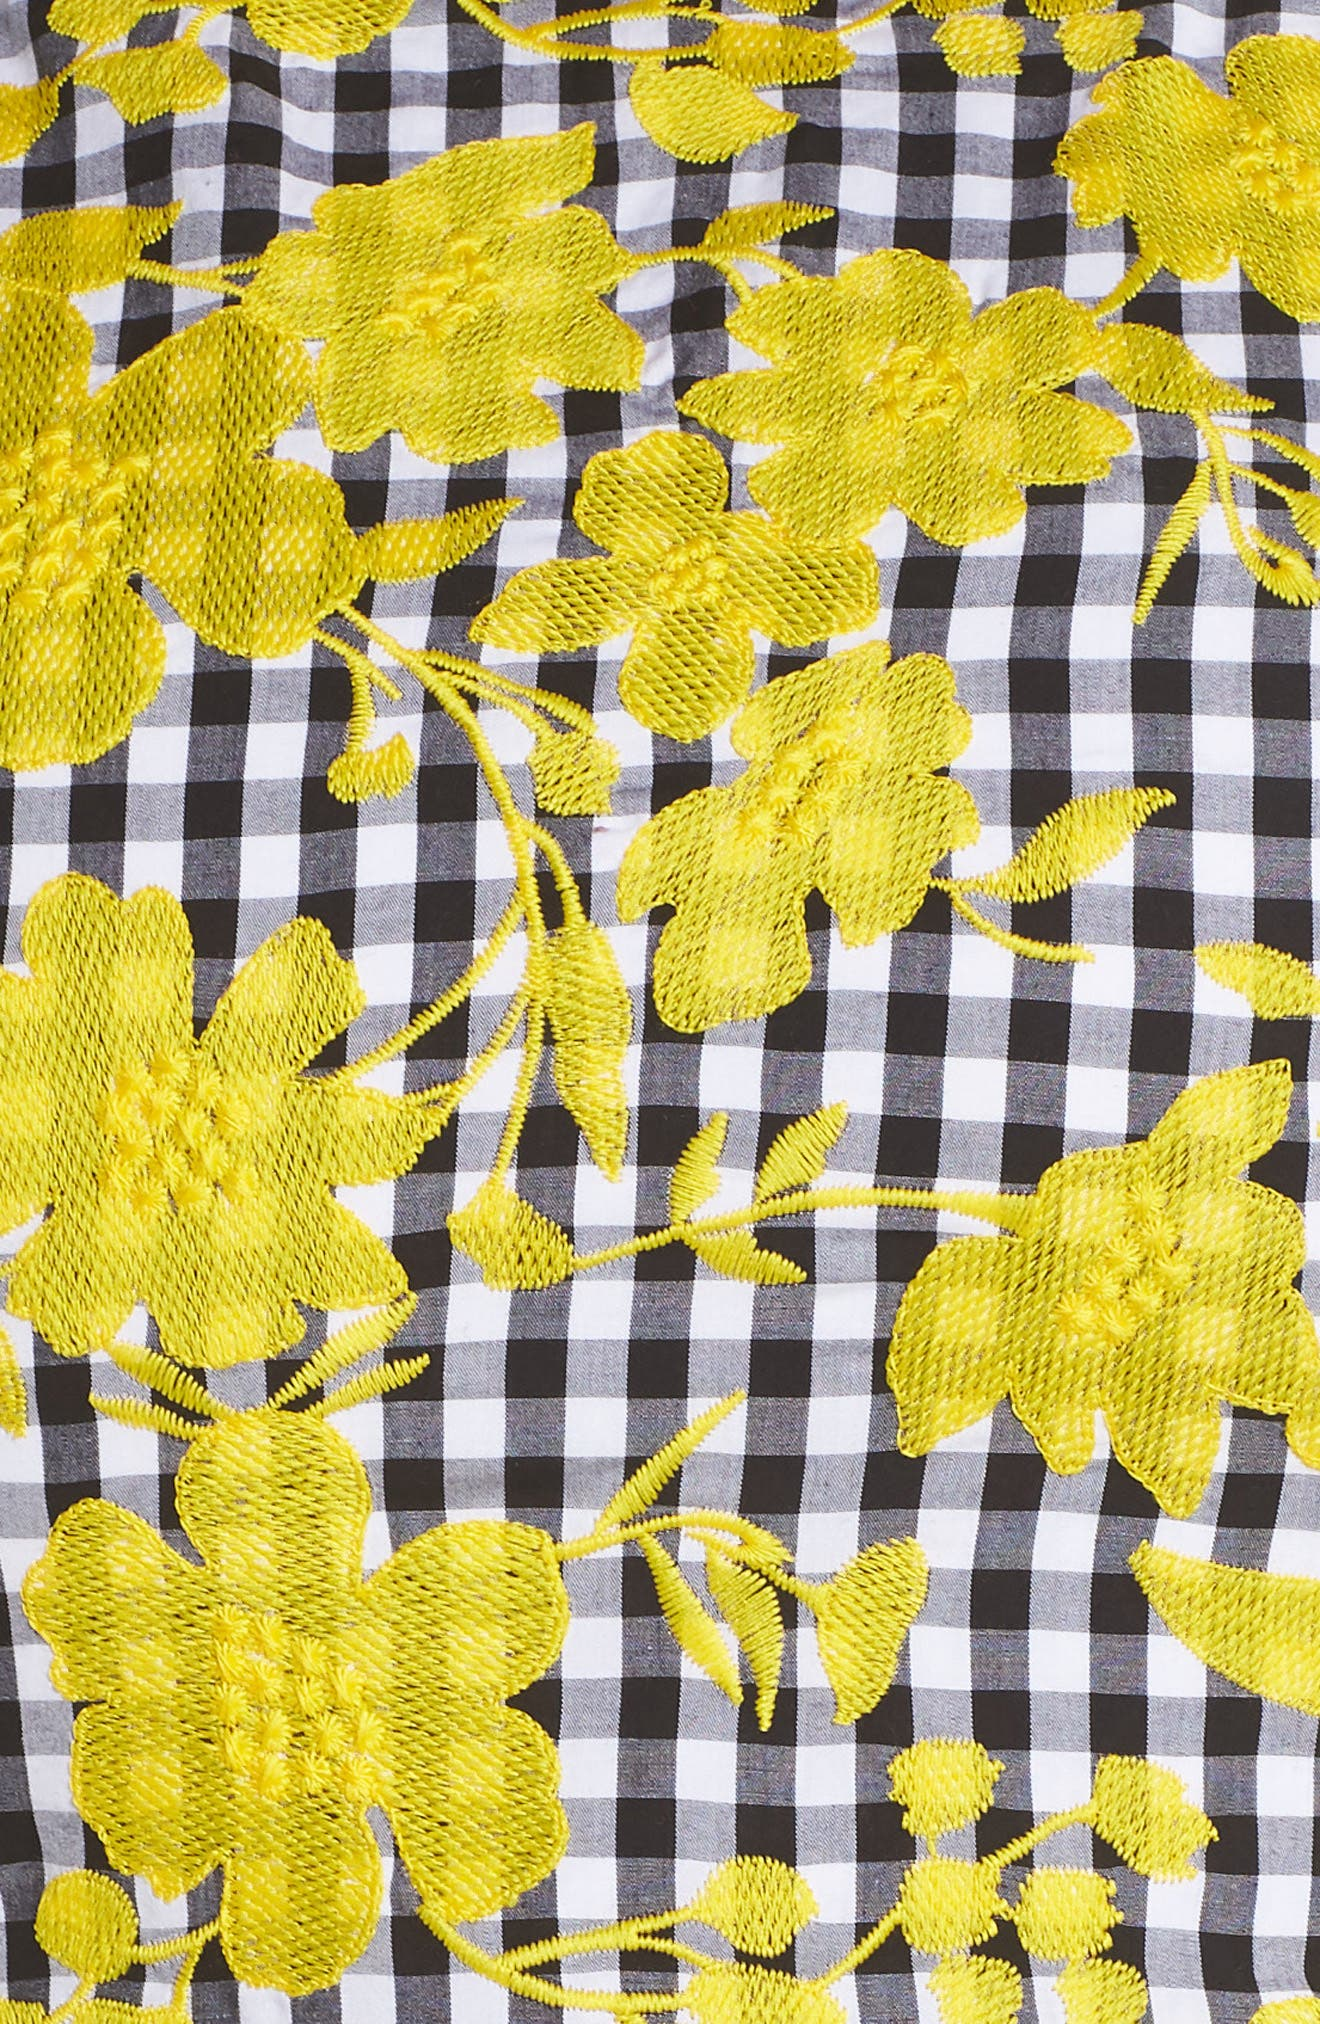 Embroidered Gingham Fit & Flare Dress,                             Alternate thumbnail 6, color,                             Yellow- Black Gingham